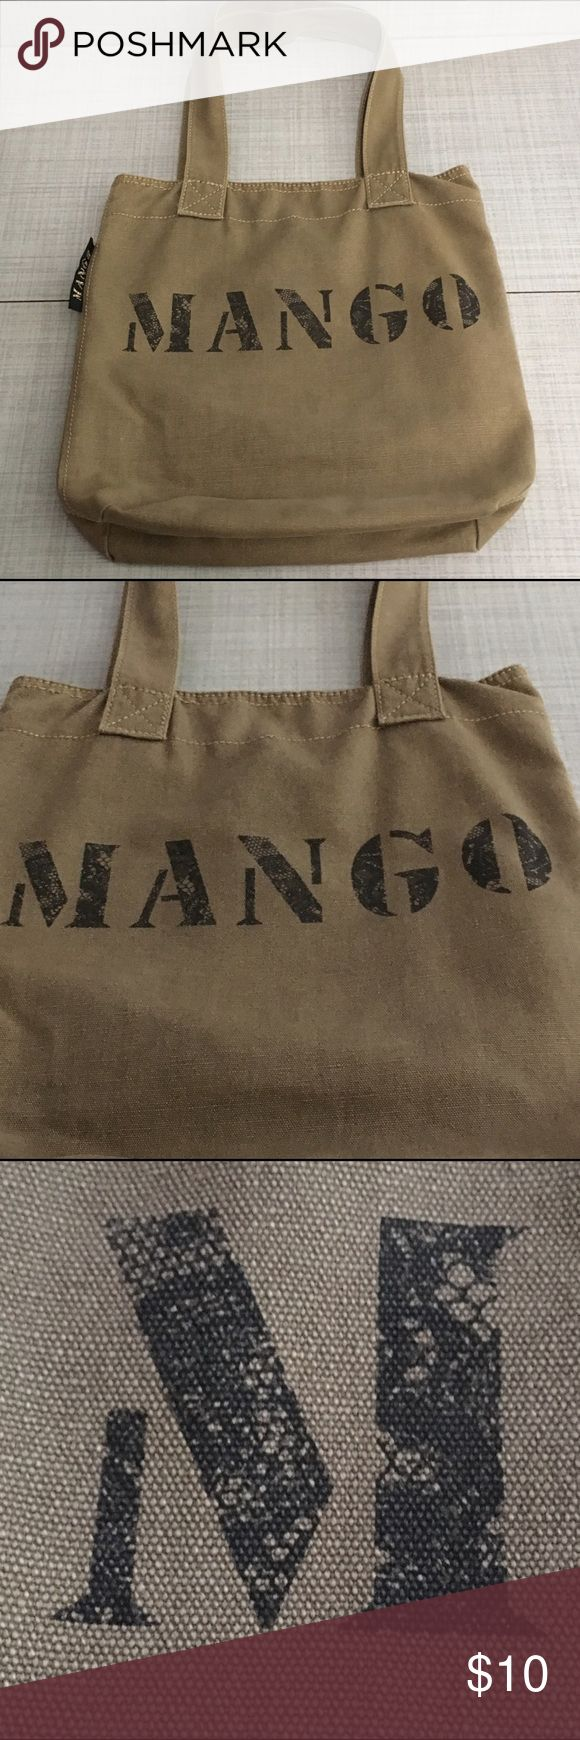 MANGO Canvas Tote Pre-loved canvas lightweight MANGO tote. Tote is in great condition with minimal signs of wear. Please comment if you have any questions. Mango Bags Totes